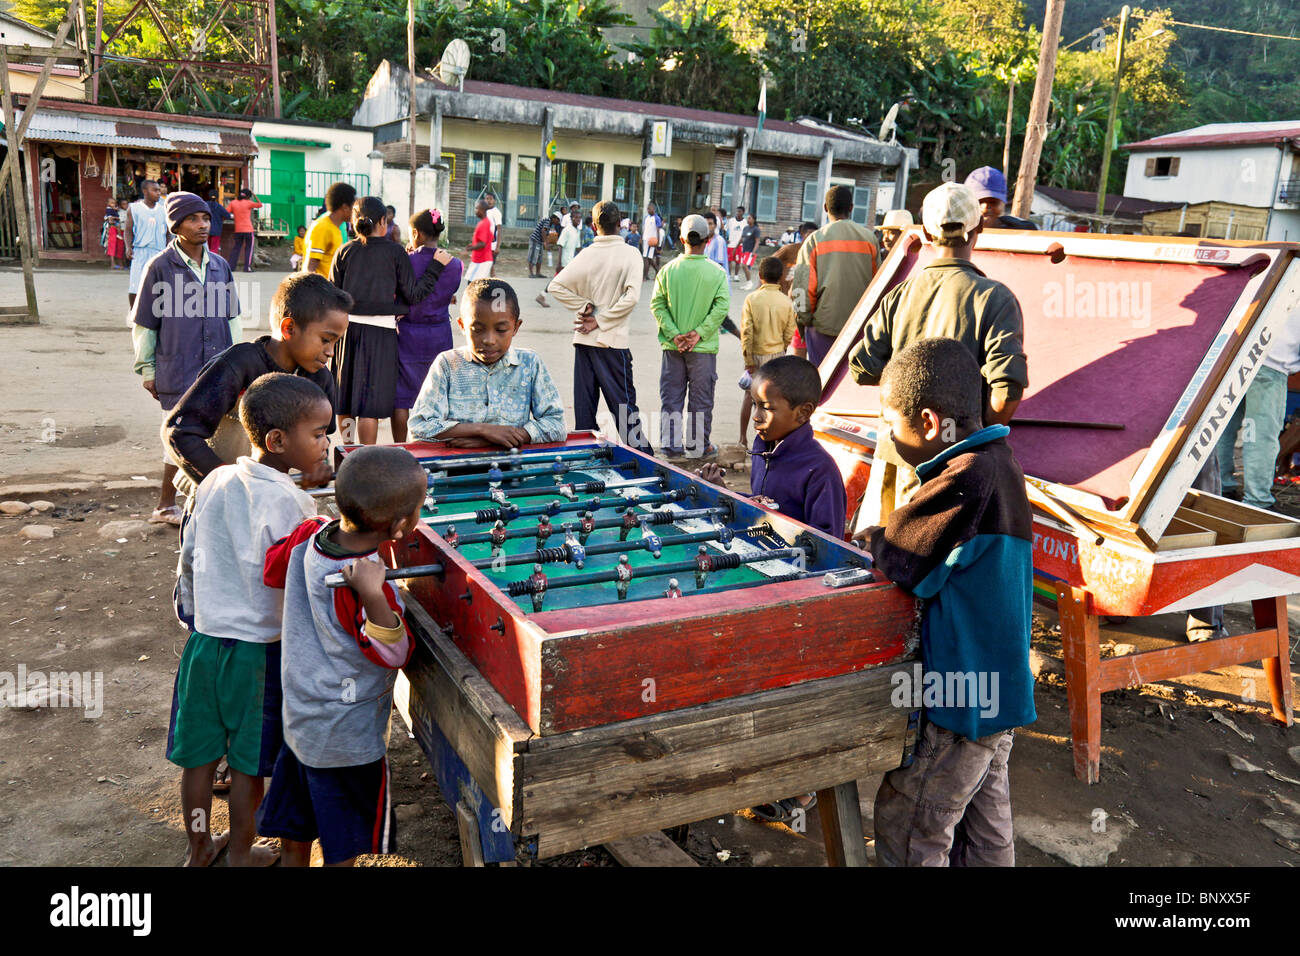 Boys playing table football/ Fussball / Fußball in Ranomafana village, Madagascar, while others watch a Basketball - Stock Image